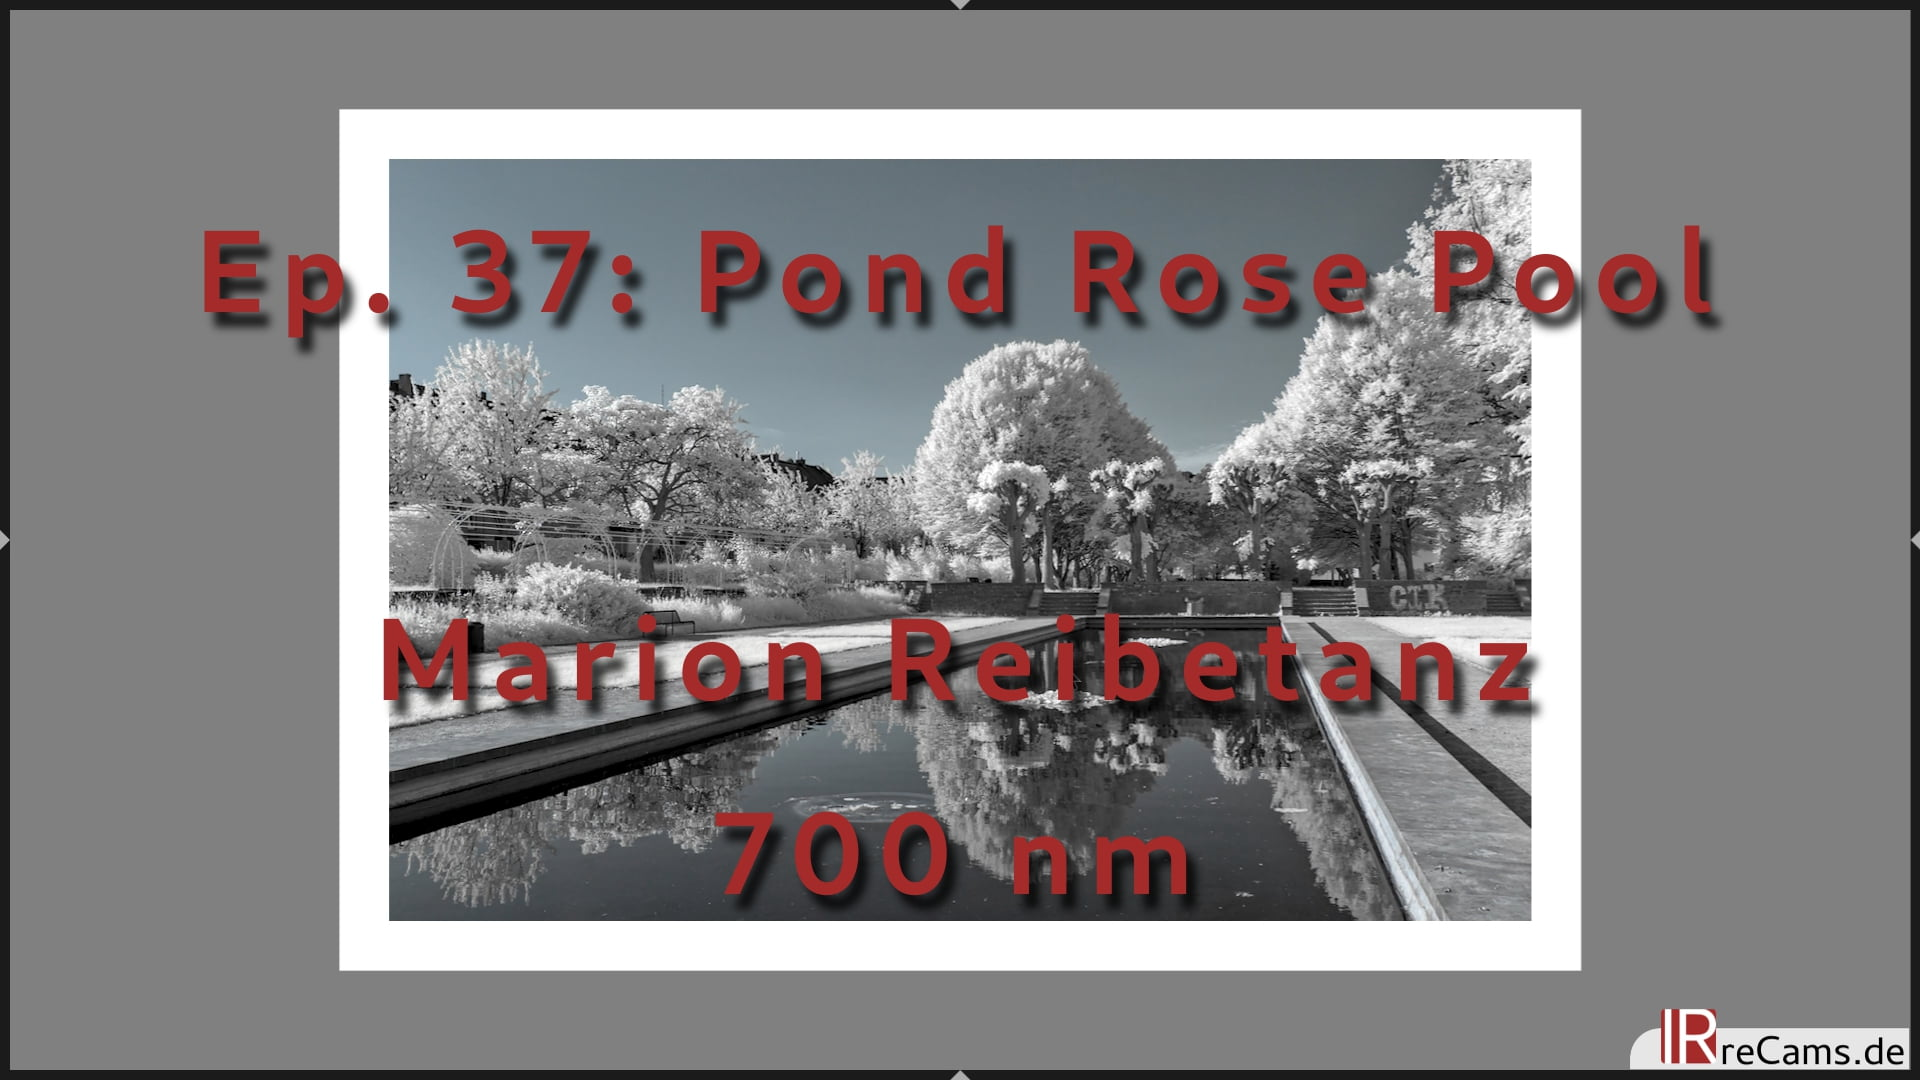 Ep. 37: Pond Rose Basin in Infrared - Colokey Image editing with 700 nm Filter